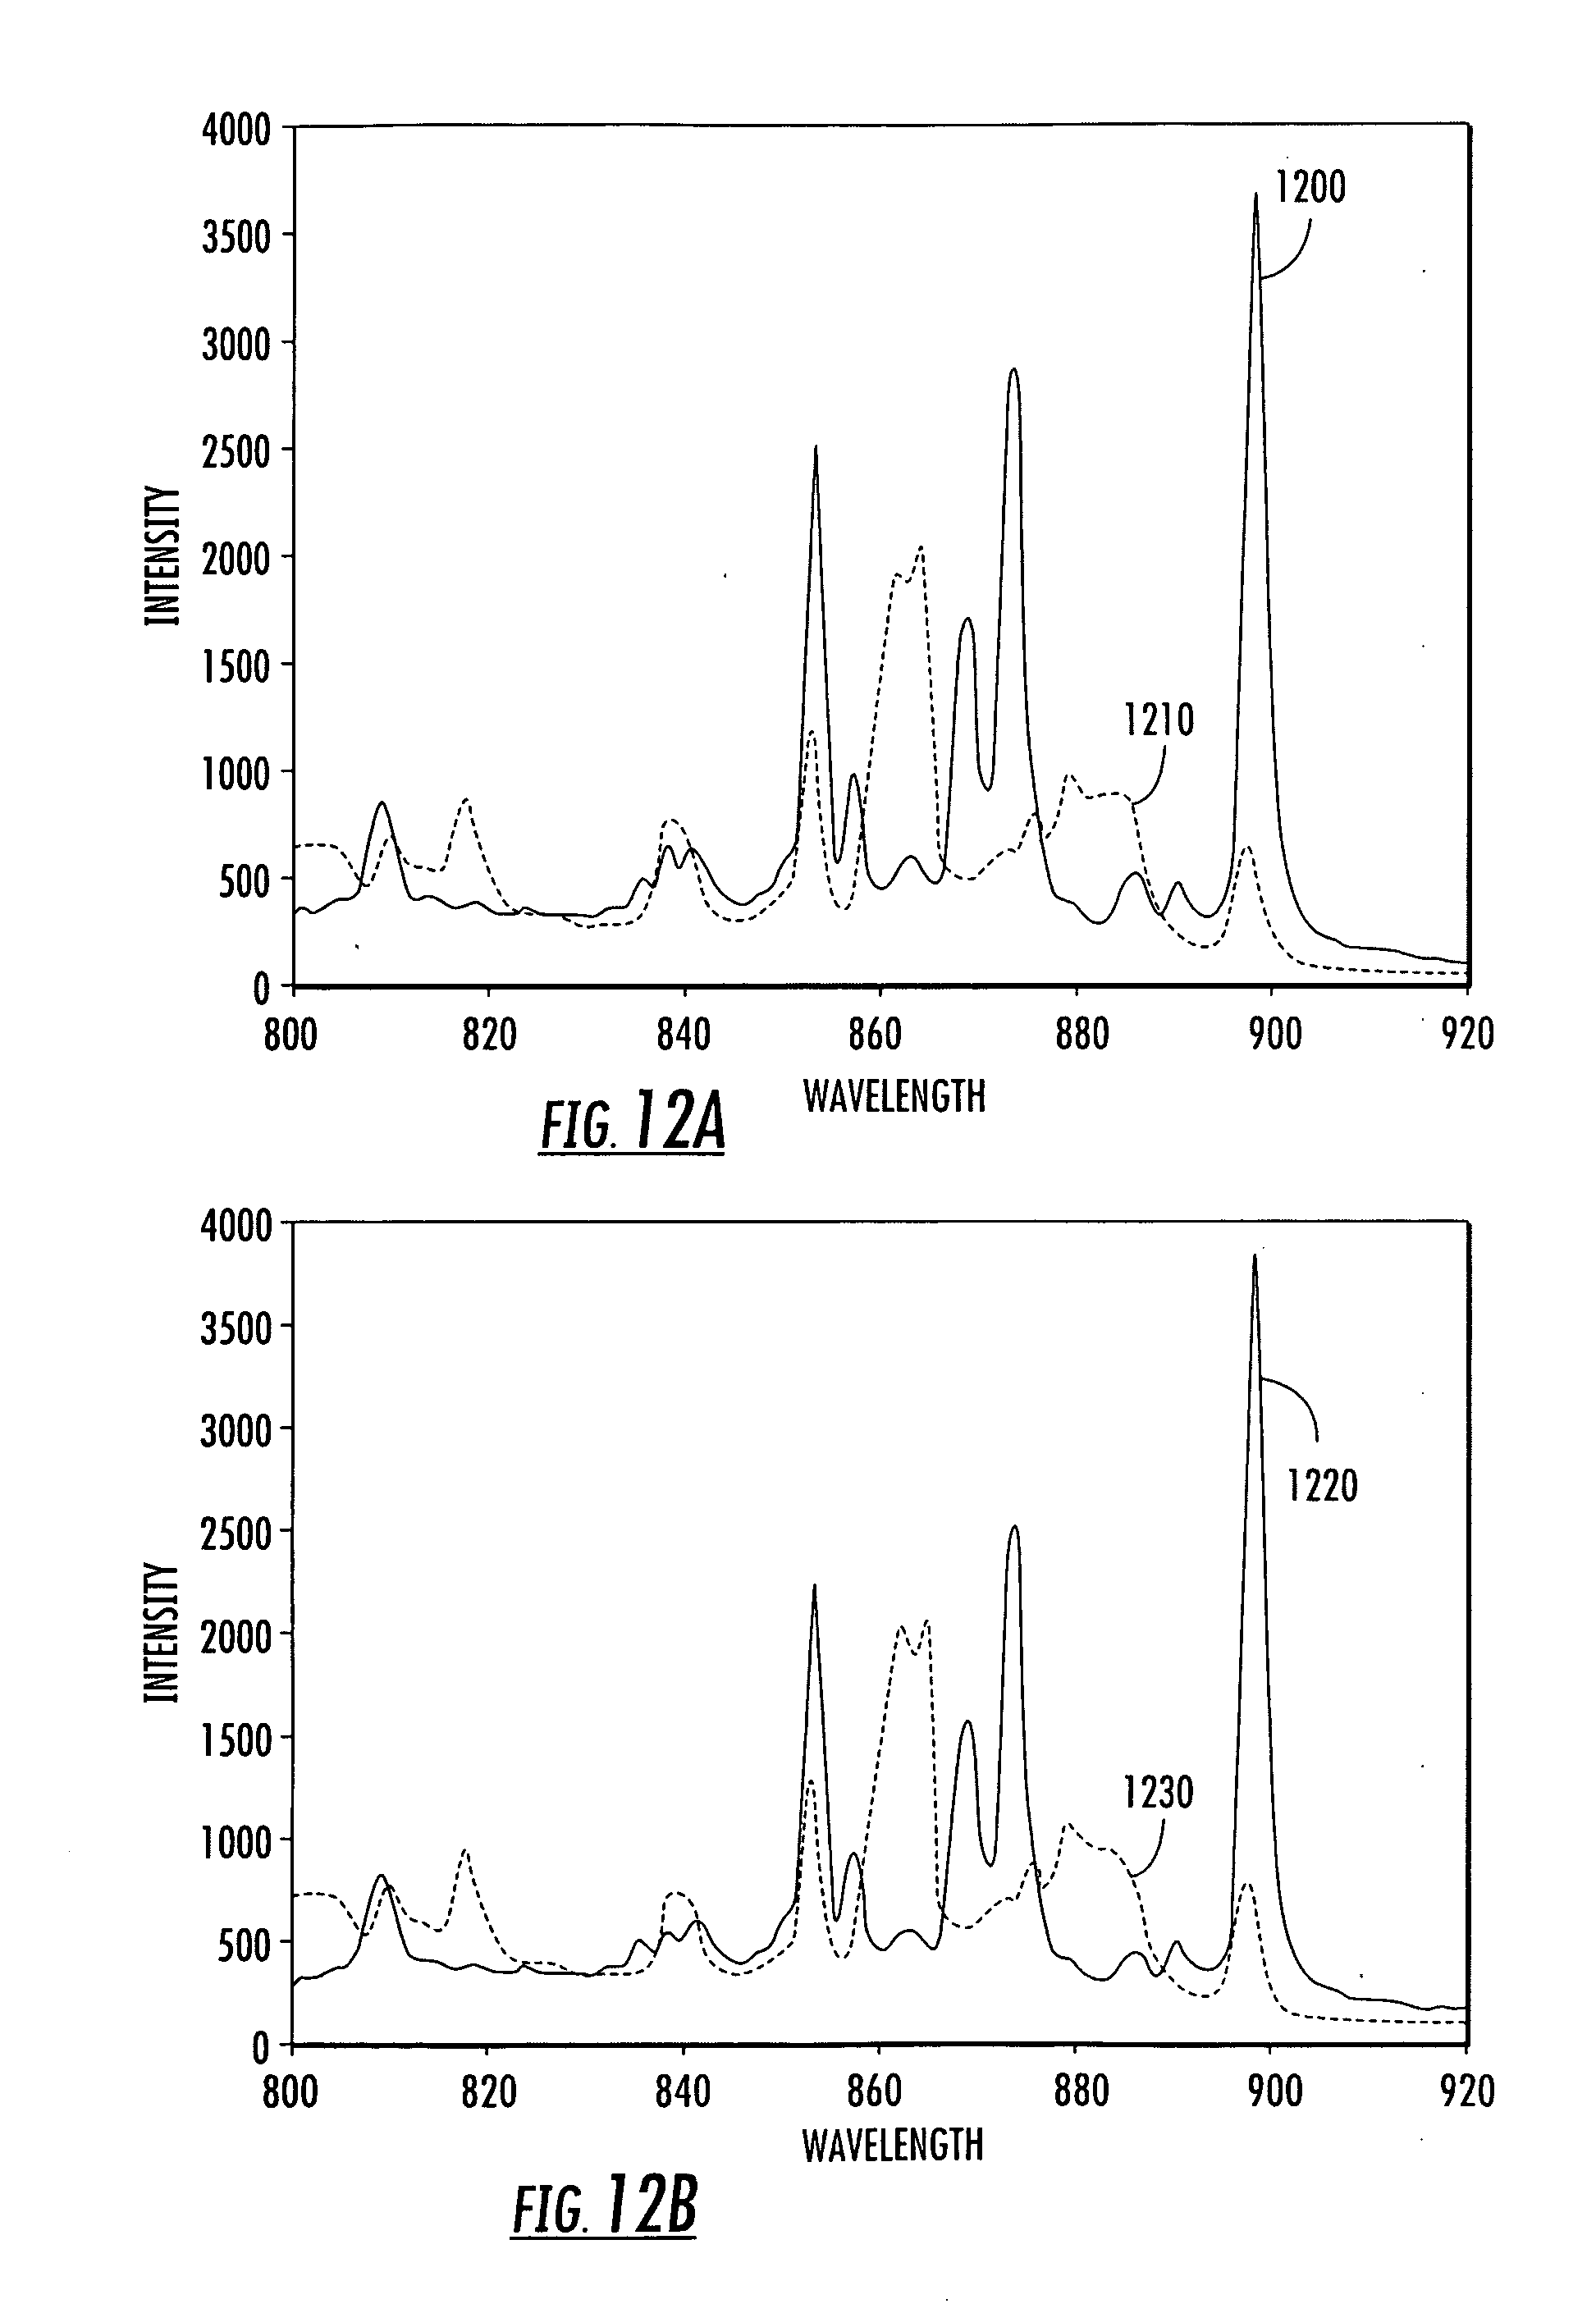 surface enhanced raman spectroscopy sers Out of a broad variety of techniques applied to characterize bioconjugate systems 1,3, surface enhanced raman spectroscopy (sers) has emerged as a highly promising method for the detection of chemical and biological species on surfaces 8,9,10,11.